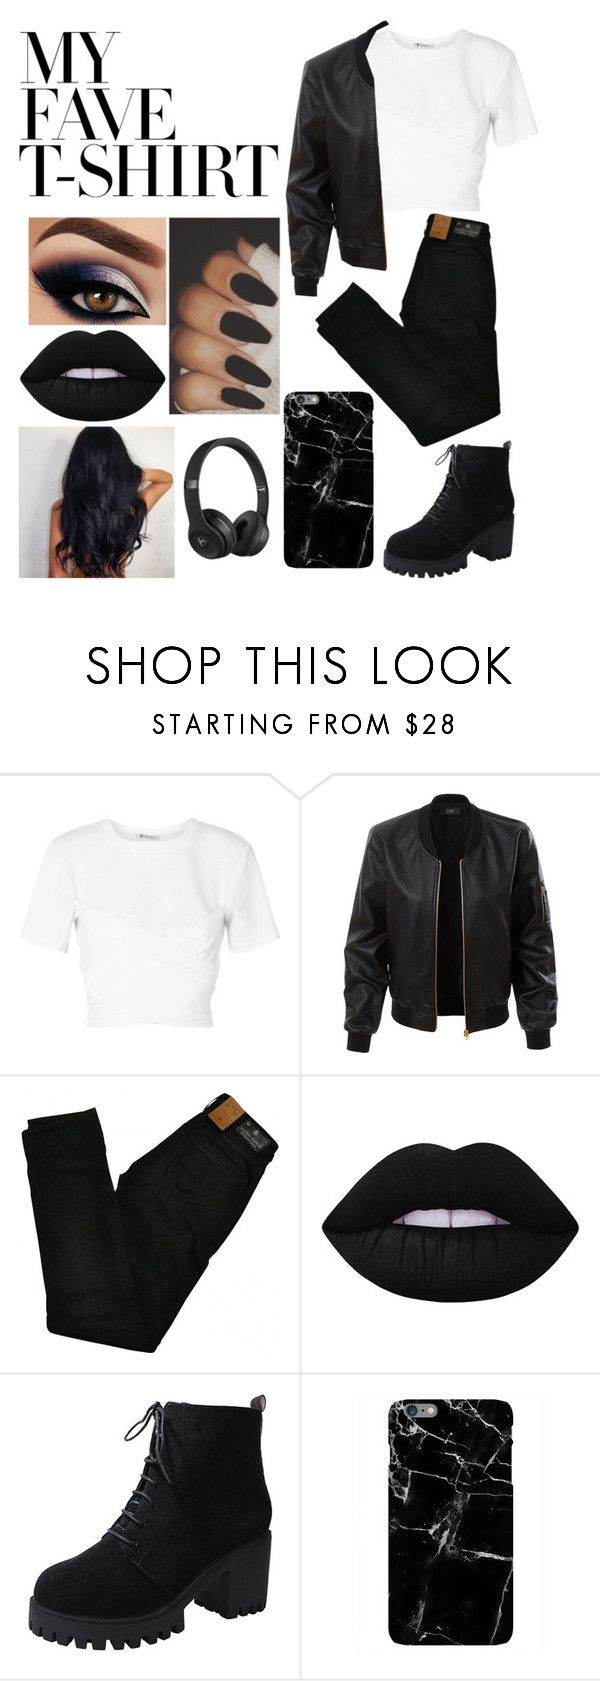 """""""Mysterious T's"""" by stayinyourlane ❤ liked on Polyvore featuring T By Alexander Wang, LE3NO, Maison Scotch, Lime Crime, Harper & Blake, Beats by Dr. Dre and MyFaveTshirt"""